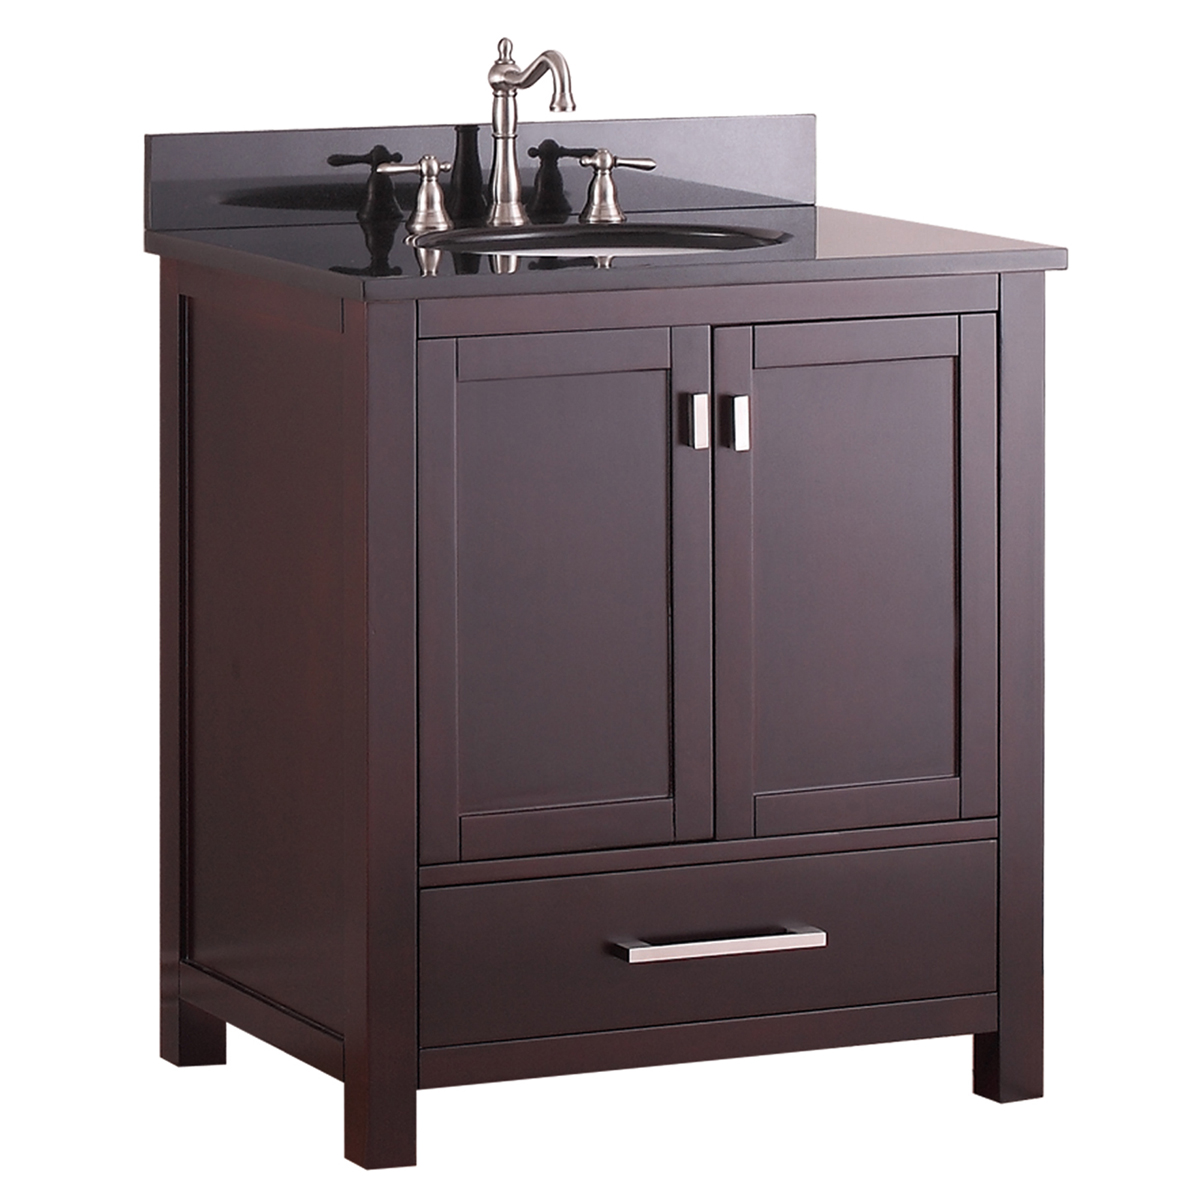 "31"" Toscana Single Bath Vanity - Espresso with Black Granite Top"